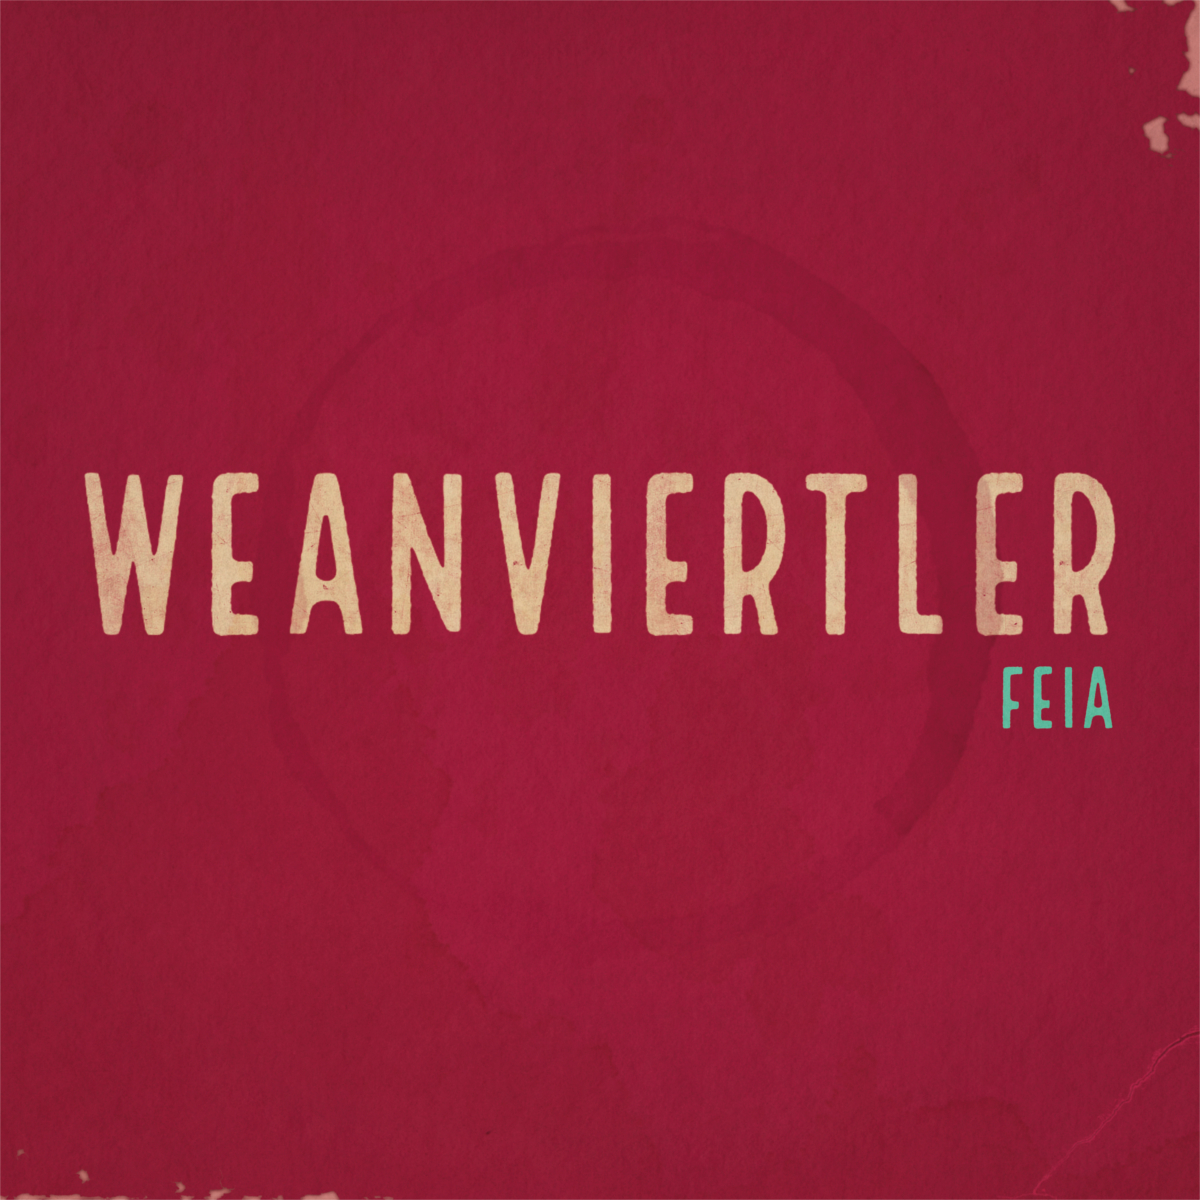 WEANVIERTLER - Feia // Single, 2017/09/08 // MMP017 // EAN: 9008798239580